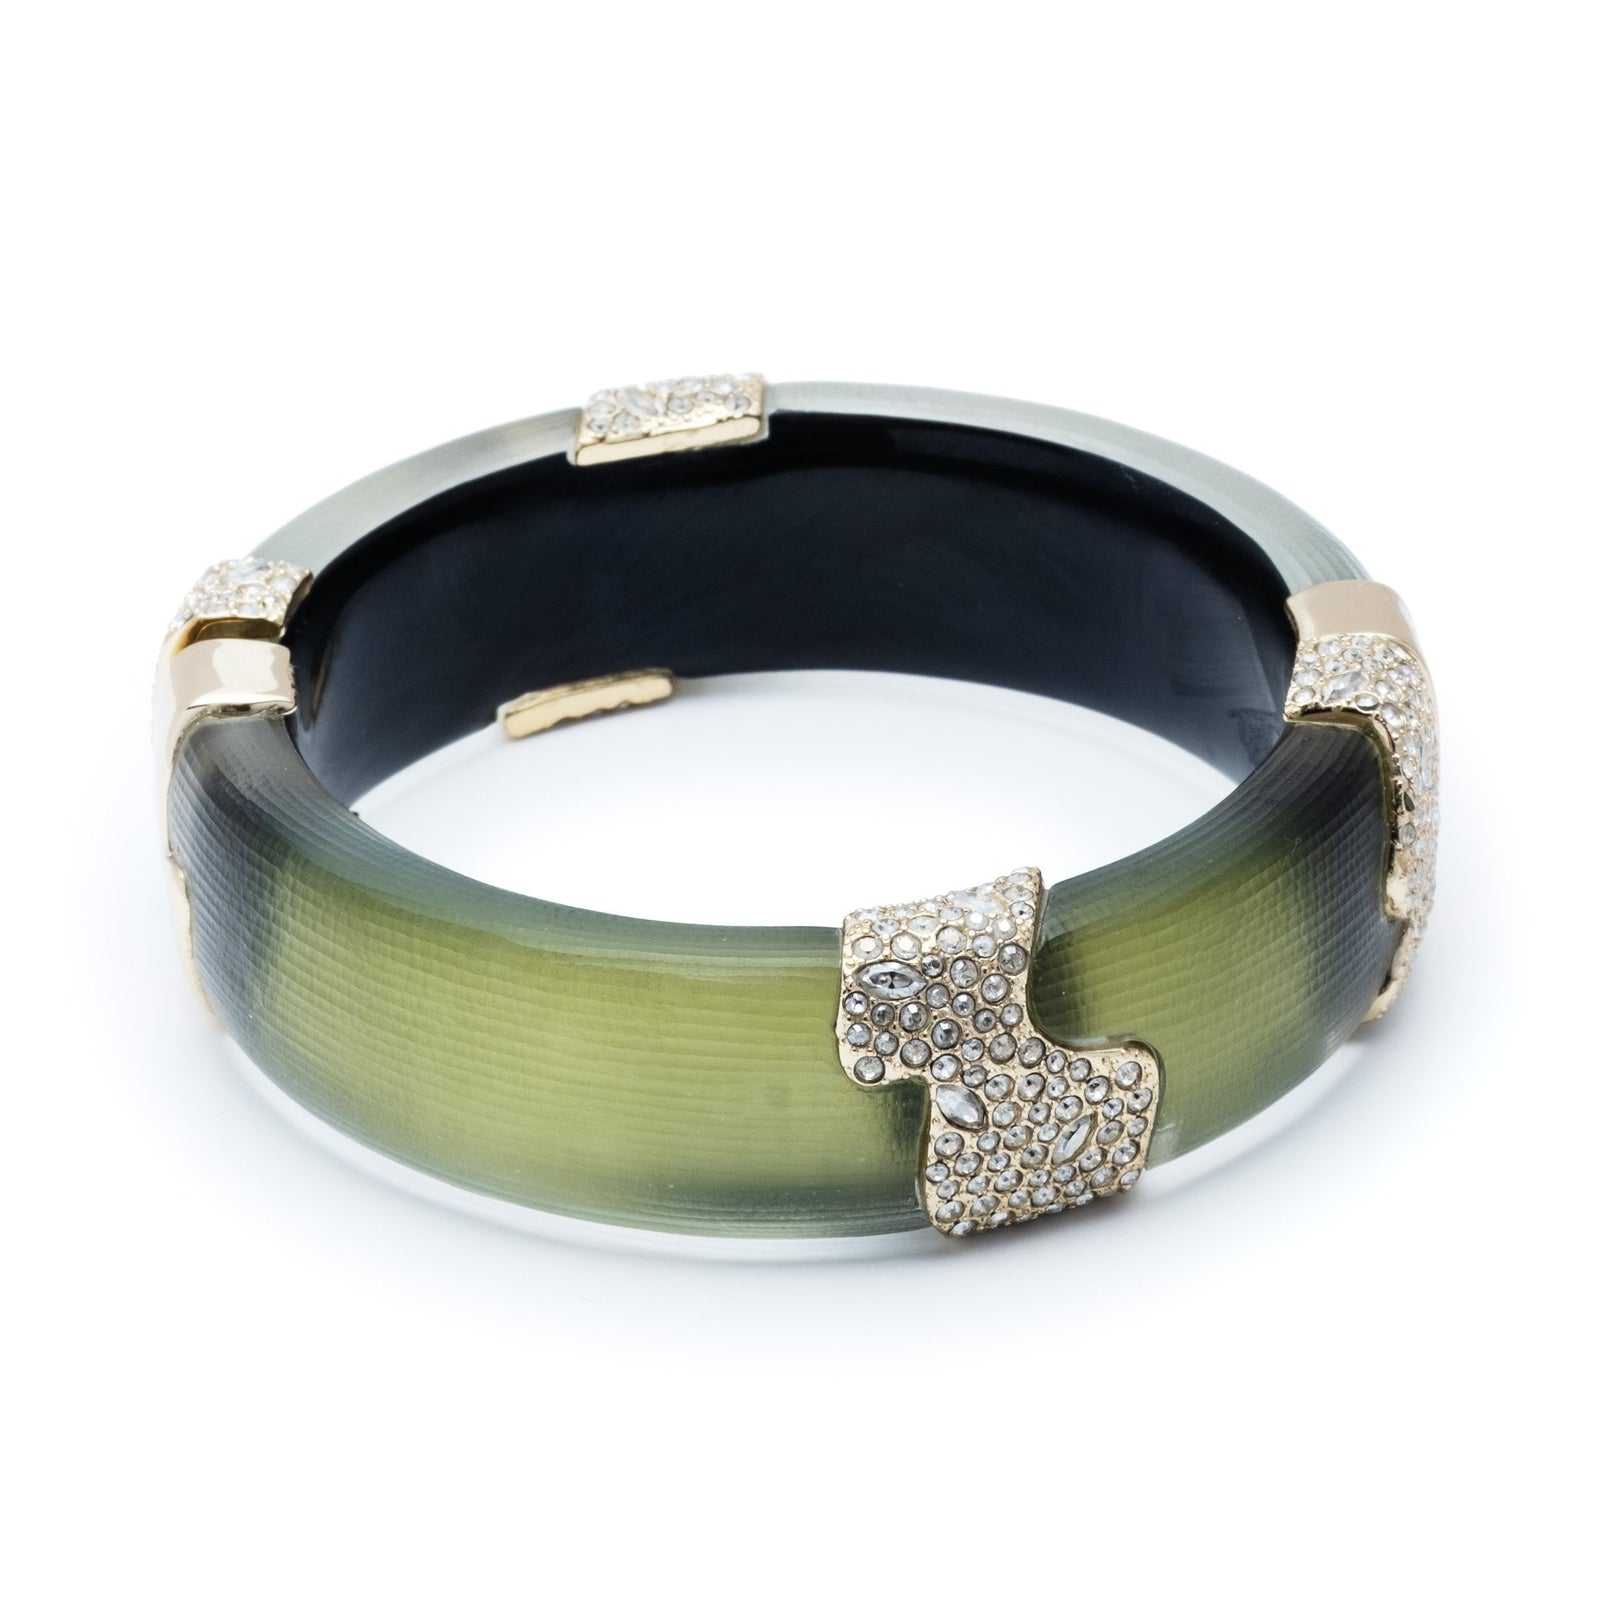 Crystal Encrusted Sectioned Hinge Bracelet